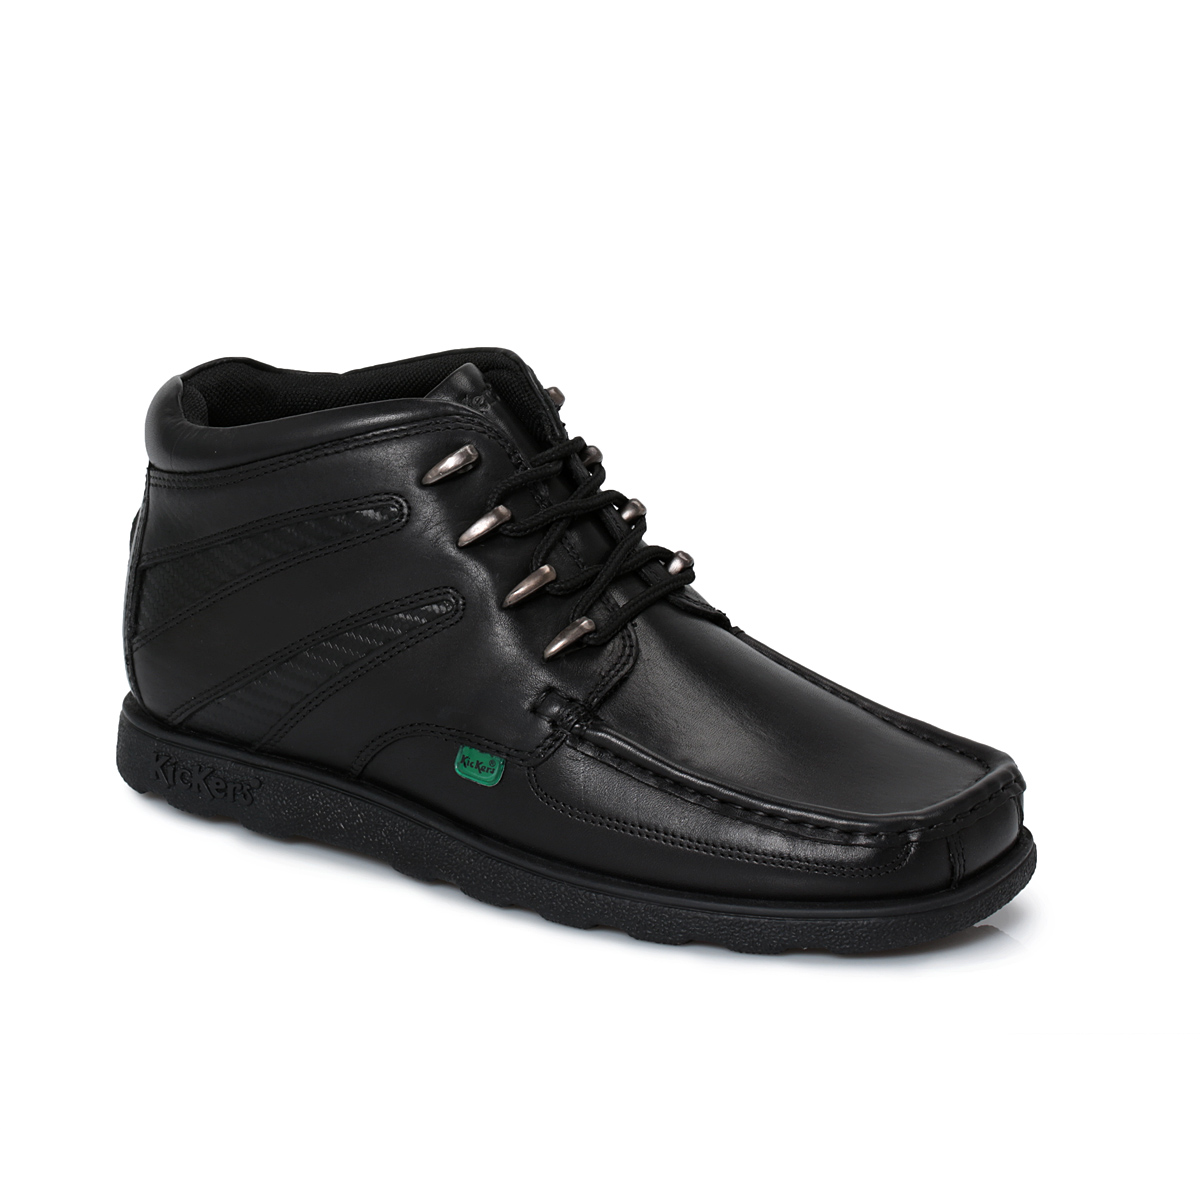 Kickers Black Leather Junior Lace Up Boots Kids School ...